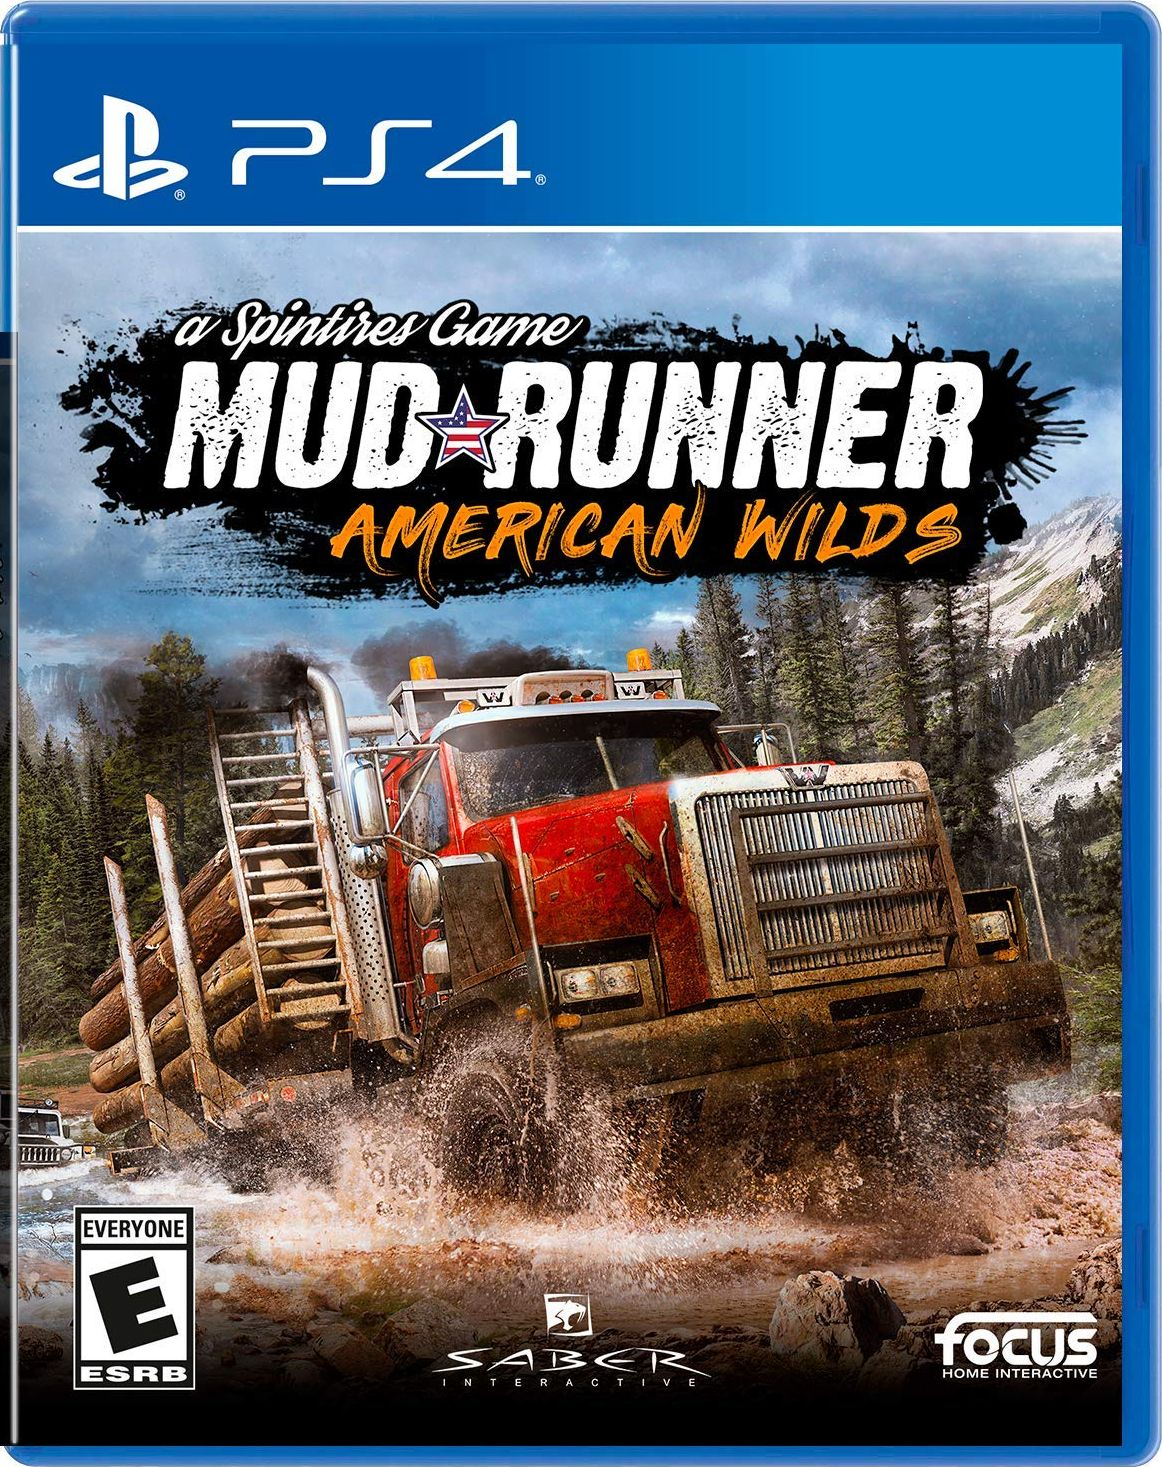 spintires mudrunner release date ps4 switch xbox one pc. Black Bedroom Furniture Sets. Home Design Ideas